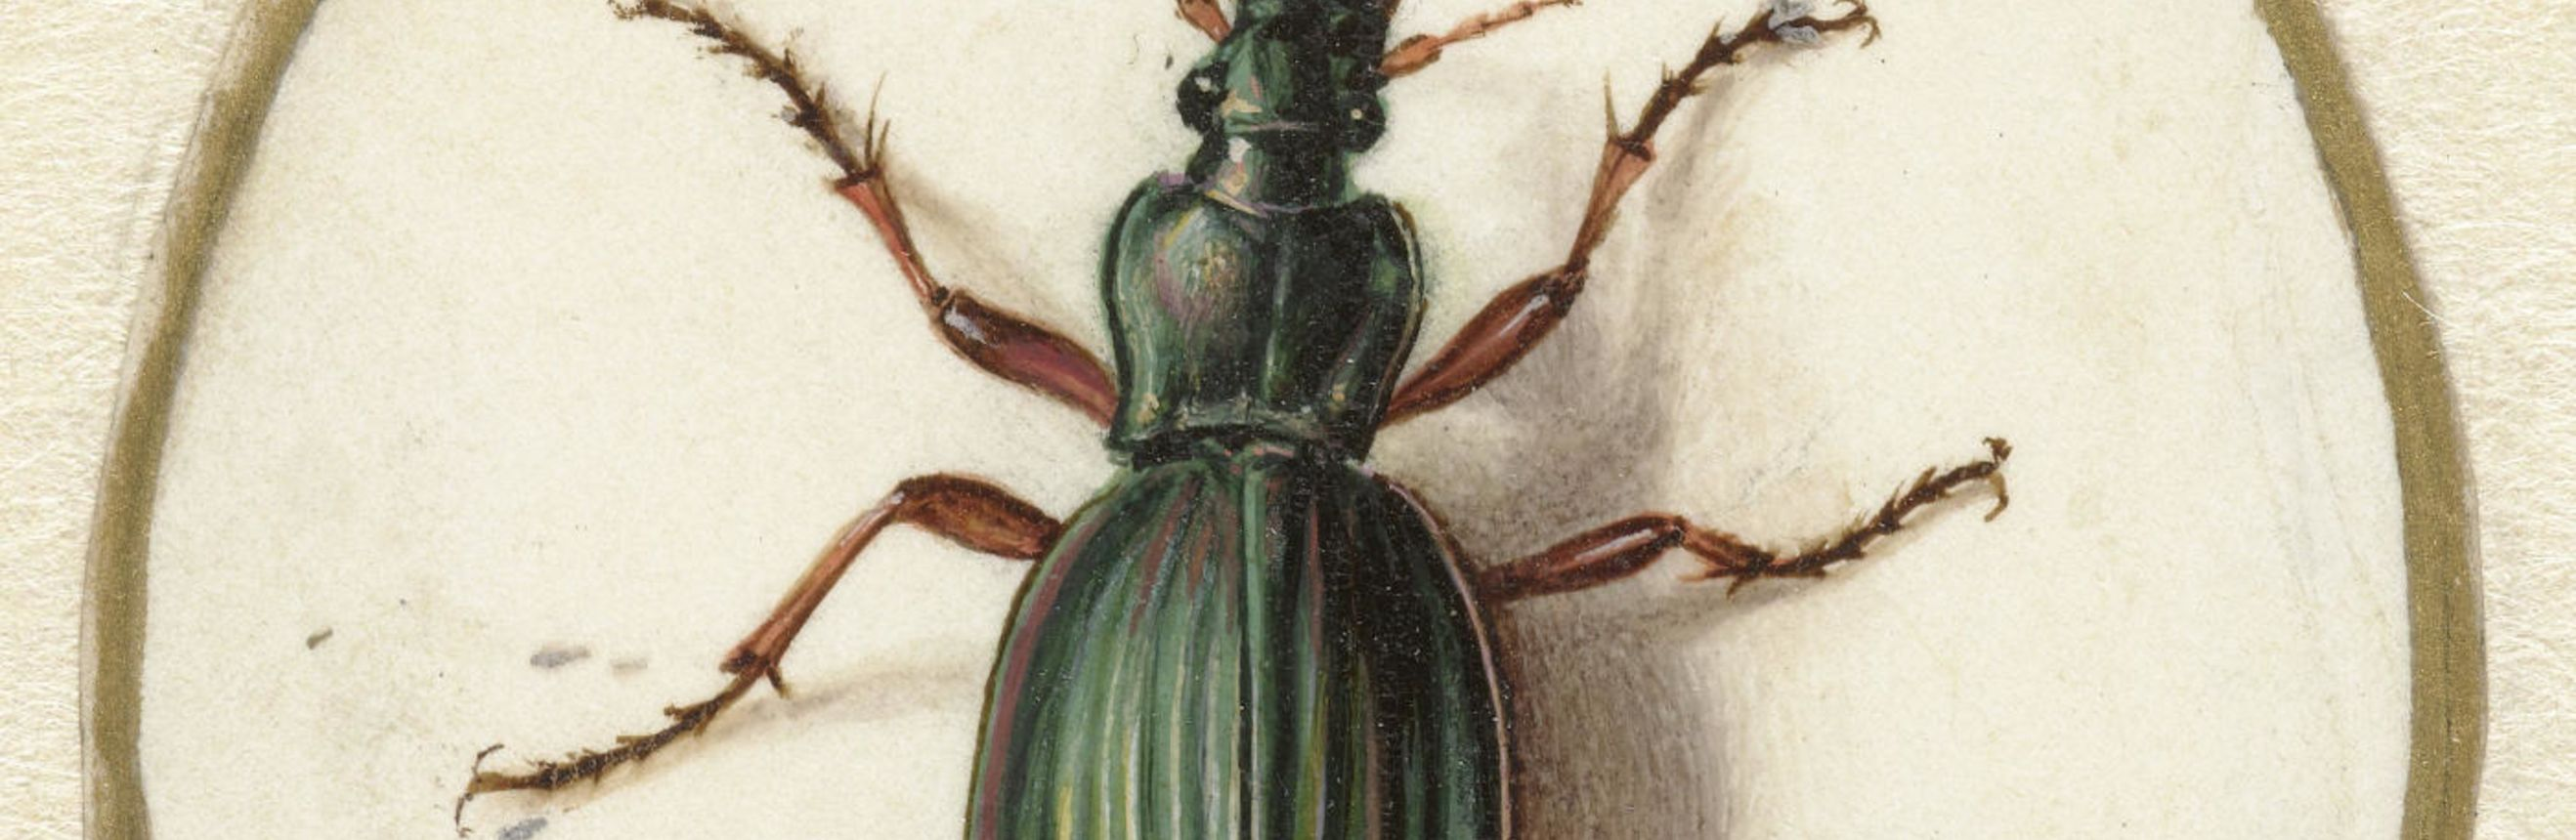 The cover for the Standard Ebooks edition of The Beetle, by Richard Marsh